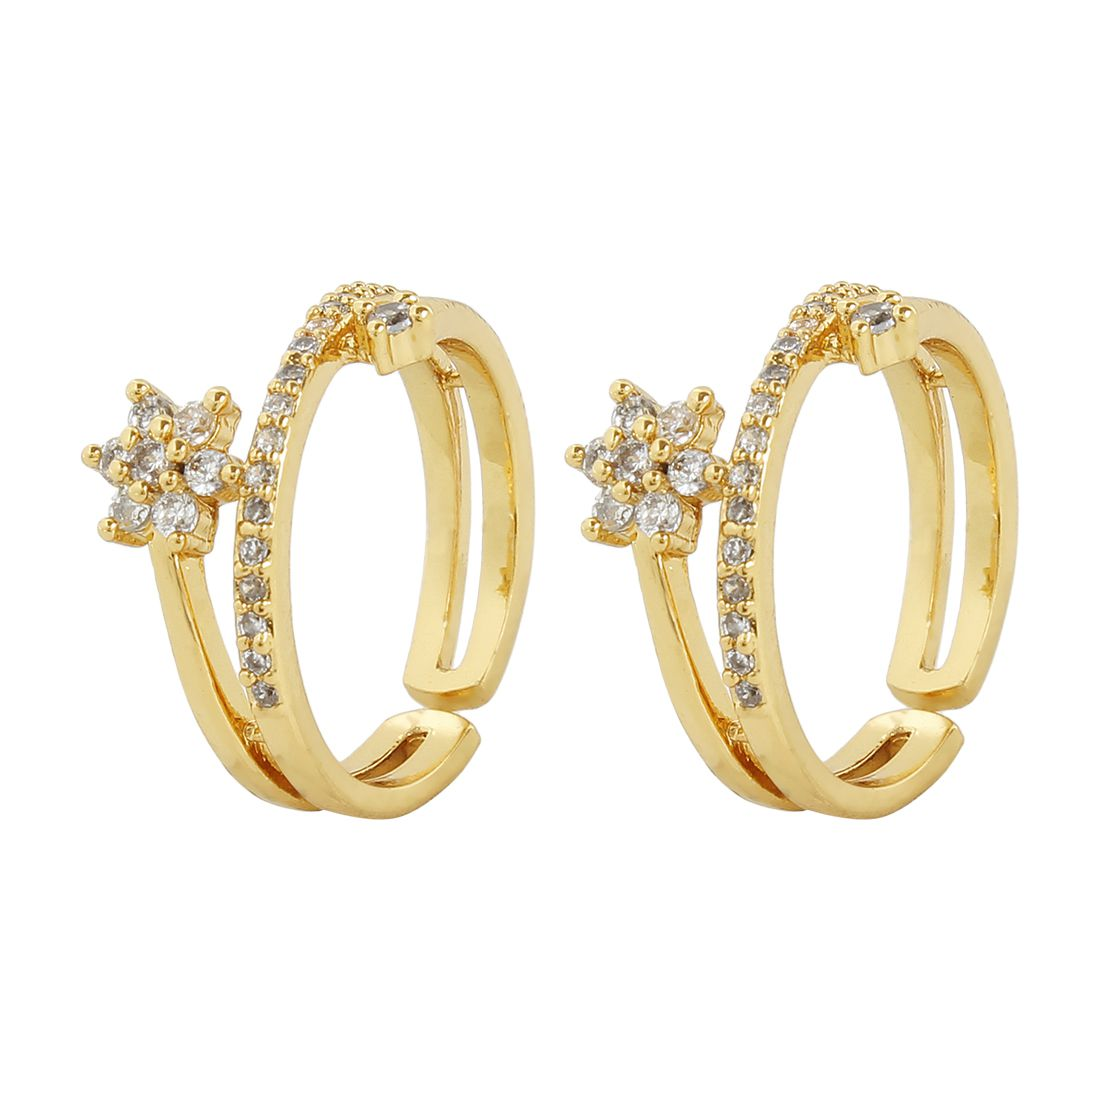 MUCH MORE Floral Shape Gold Tone Toe Ring Traditional Jewellery for Women's